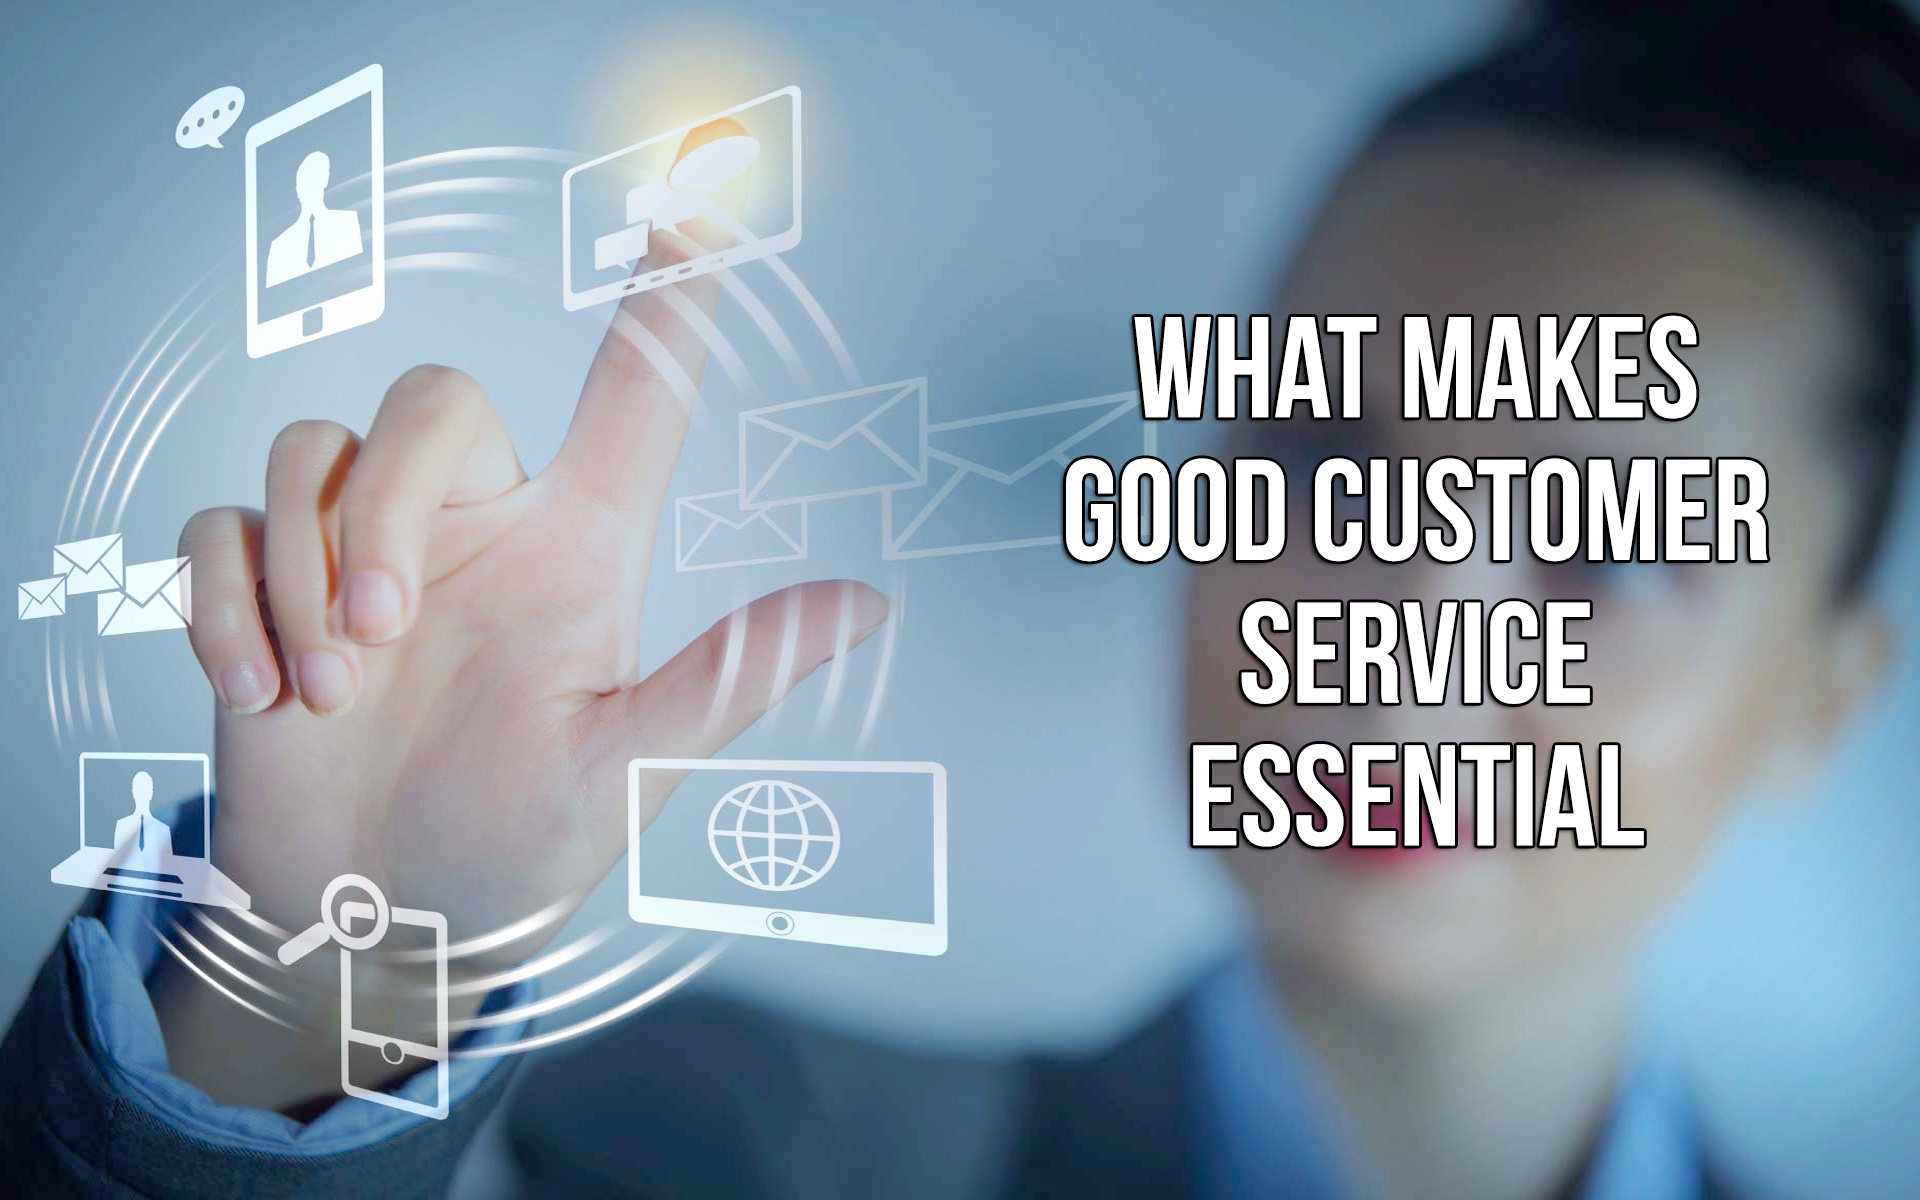 What Makes Good Customer Service Essential